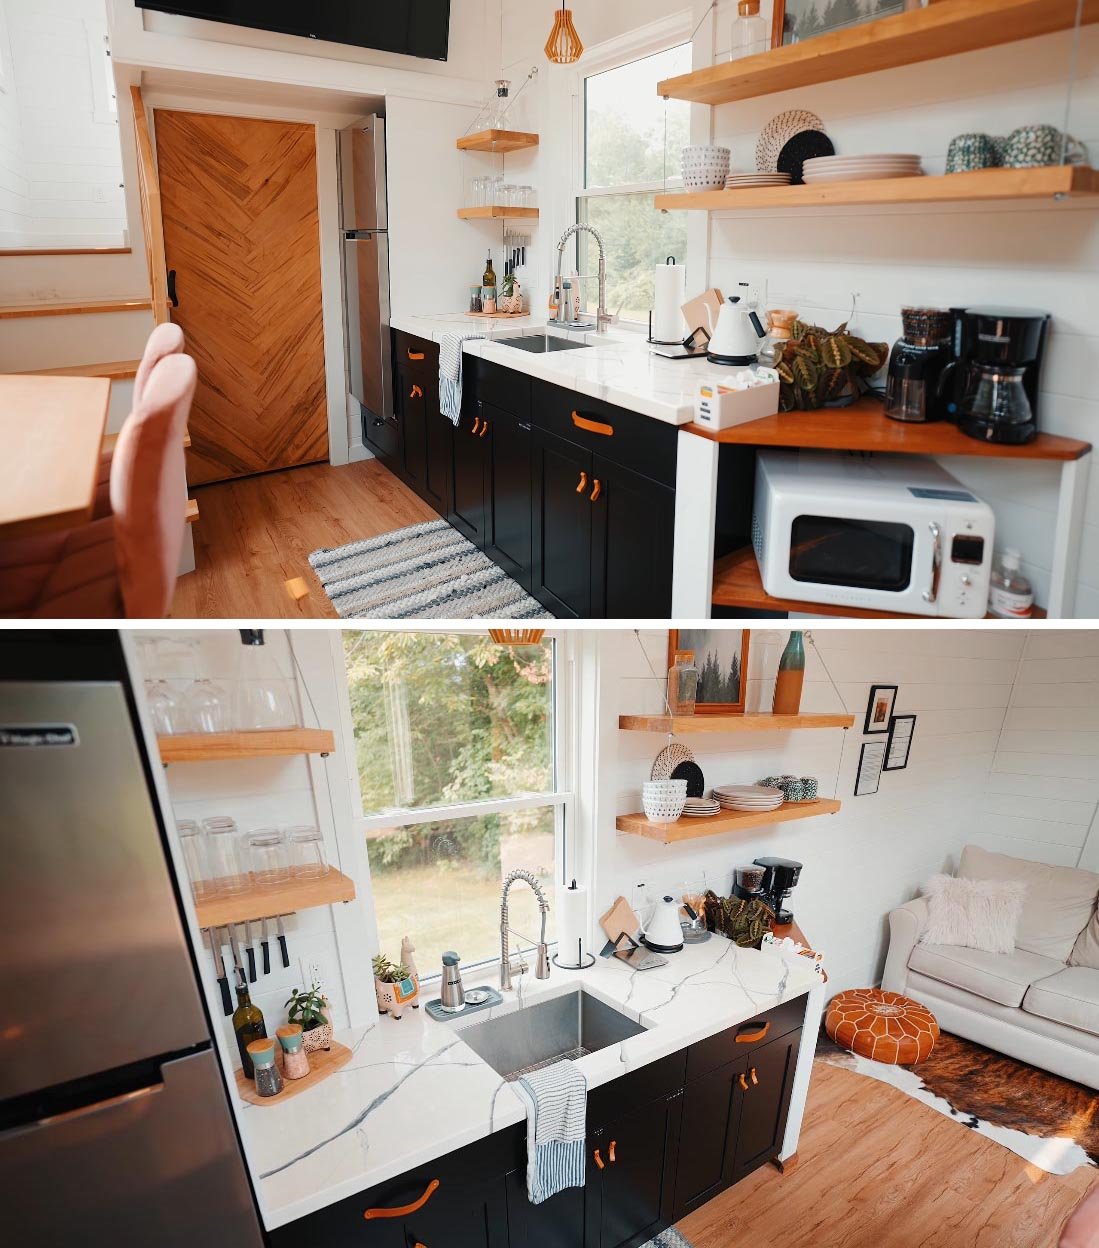 The kitchen of this Scandinavian-inspired tiny home includes black cabinets with leather pulls, a white countertop with undermount sink, and hanging wood shelves.